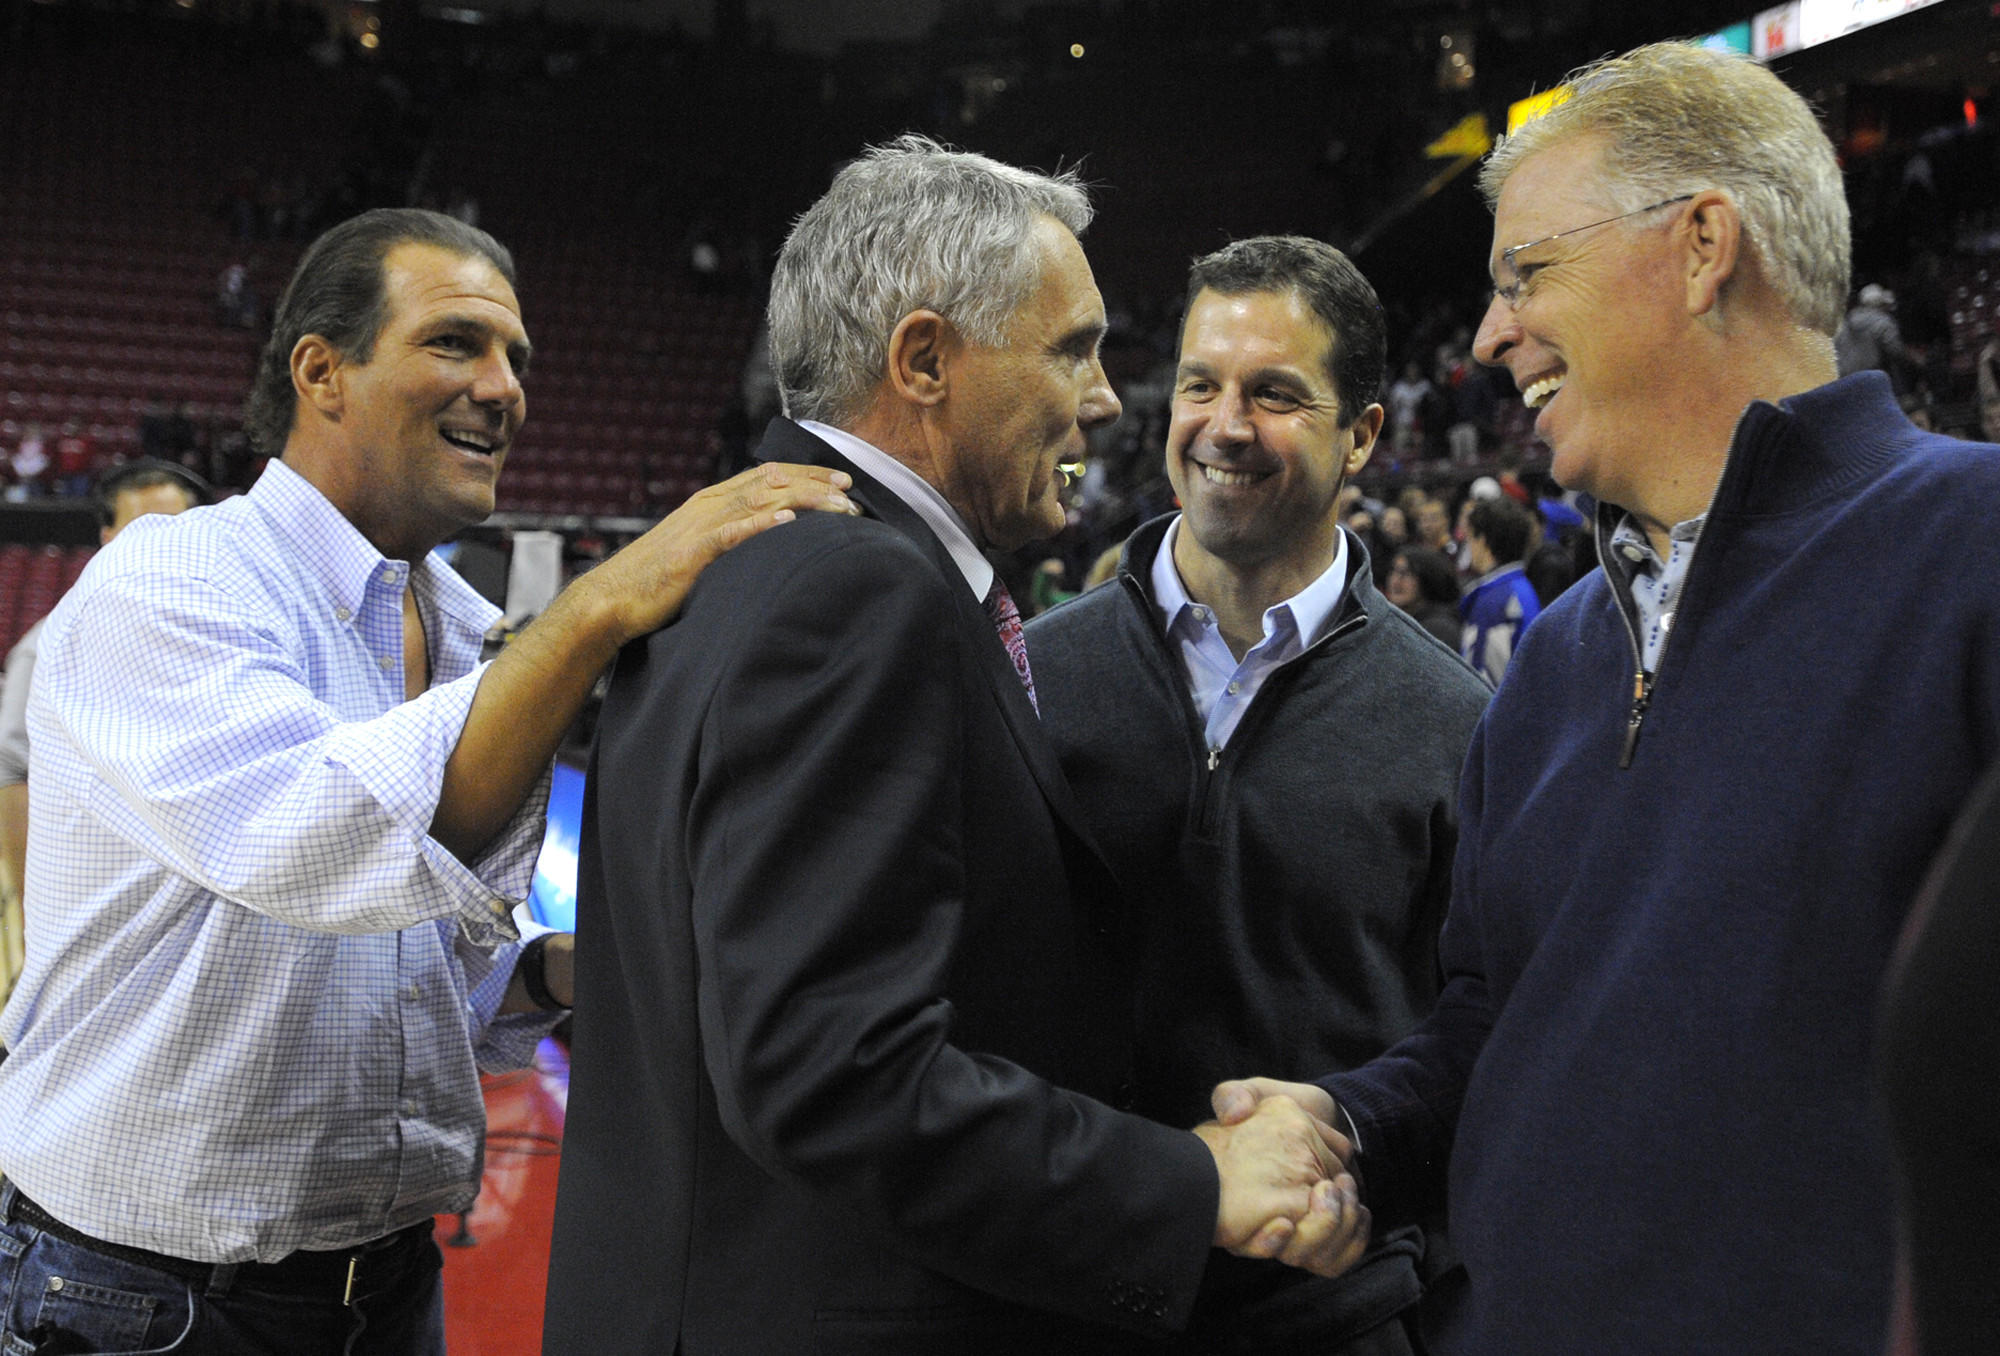 Ravens owner Steve Bisciotti lobbies for his friend Gary Williams to